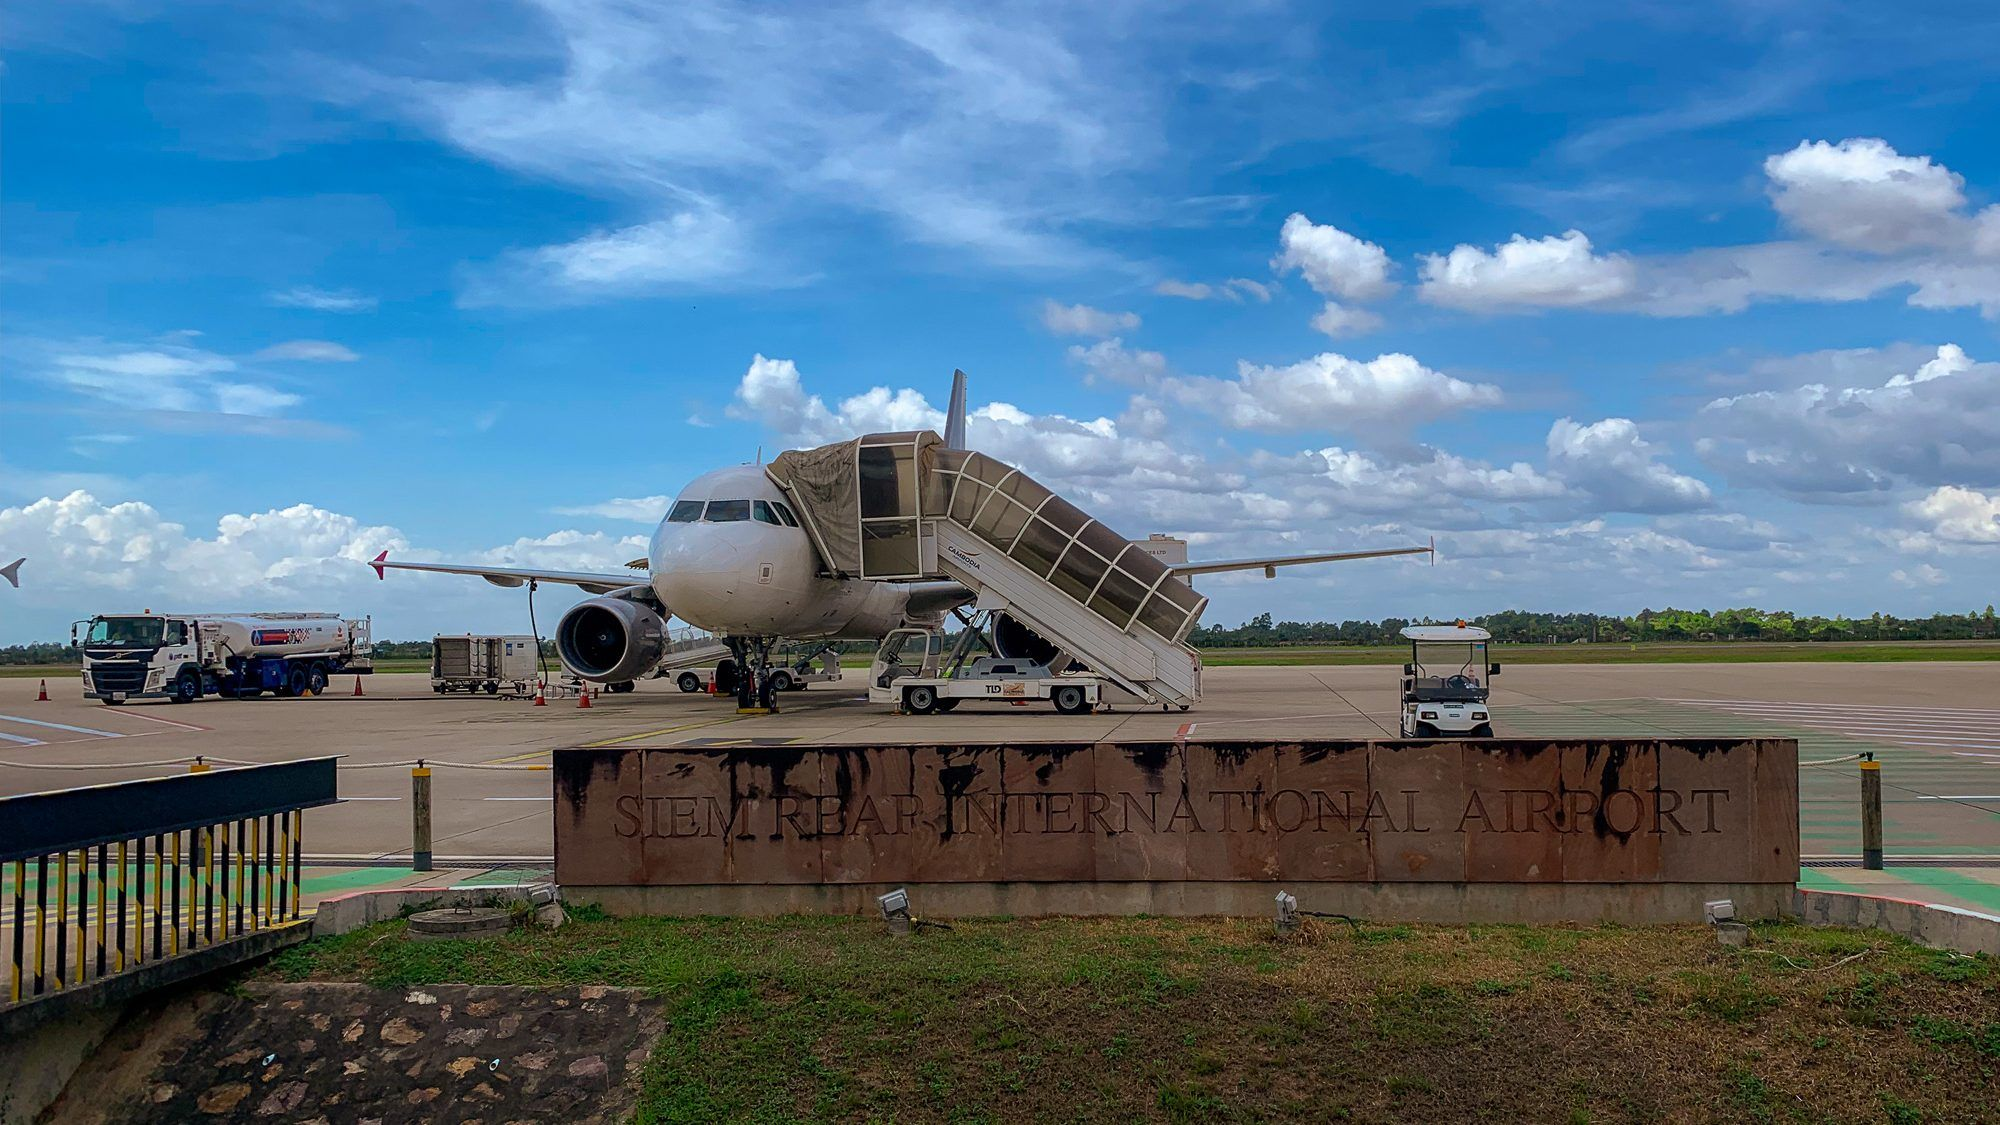 Siam Reap Airport